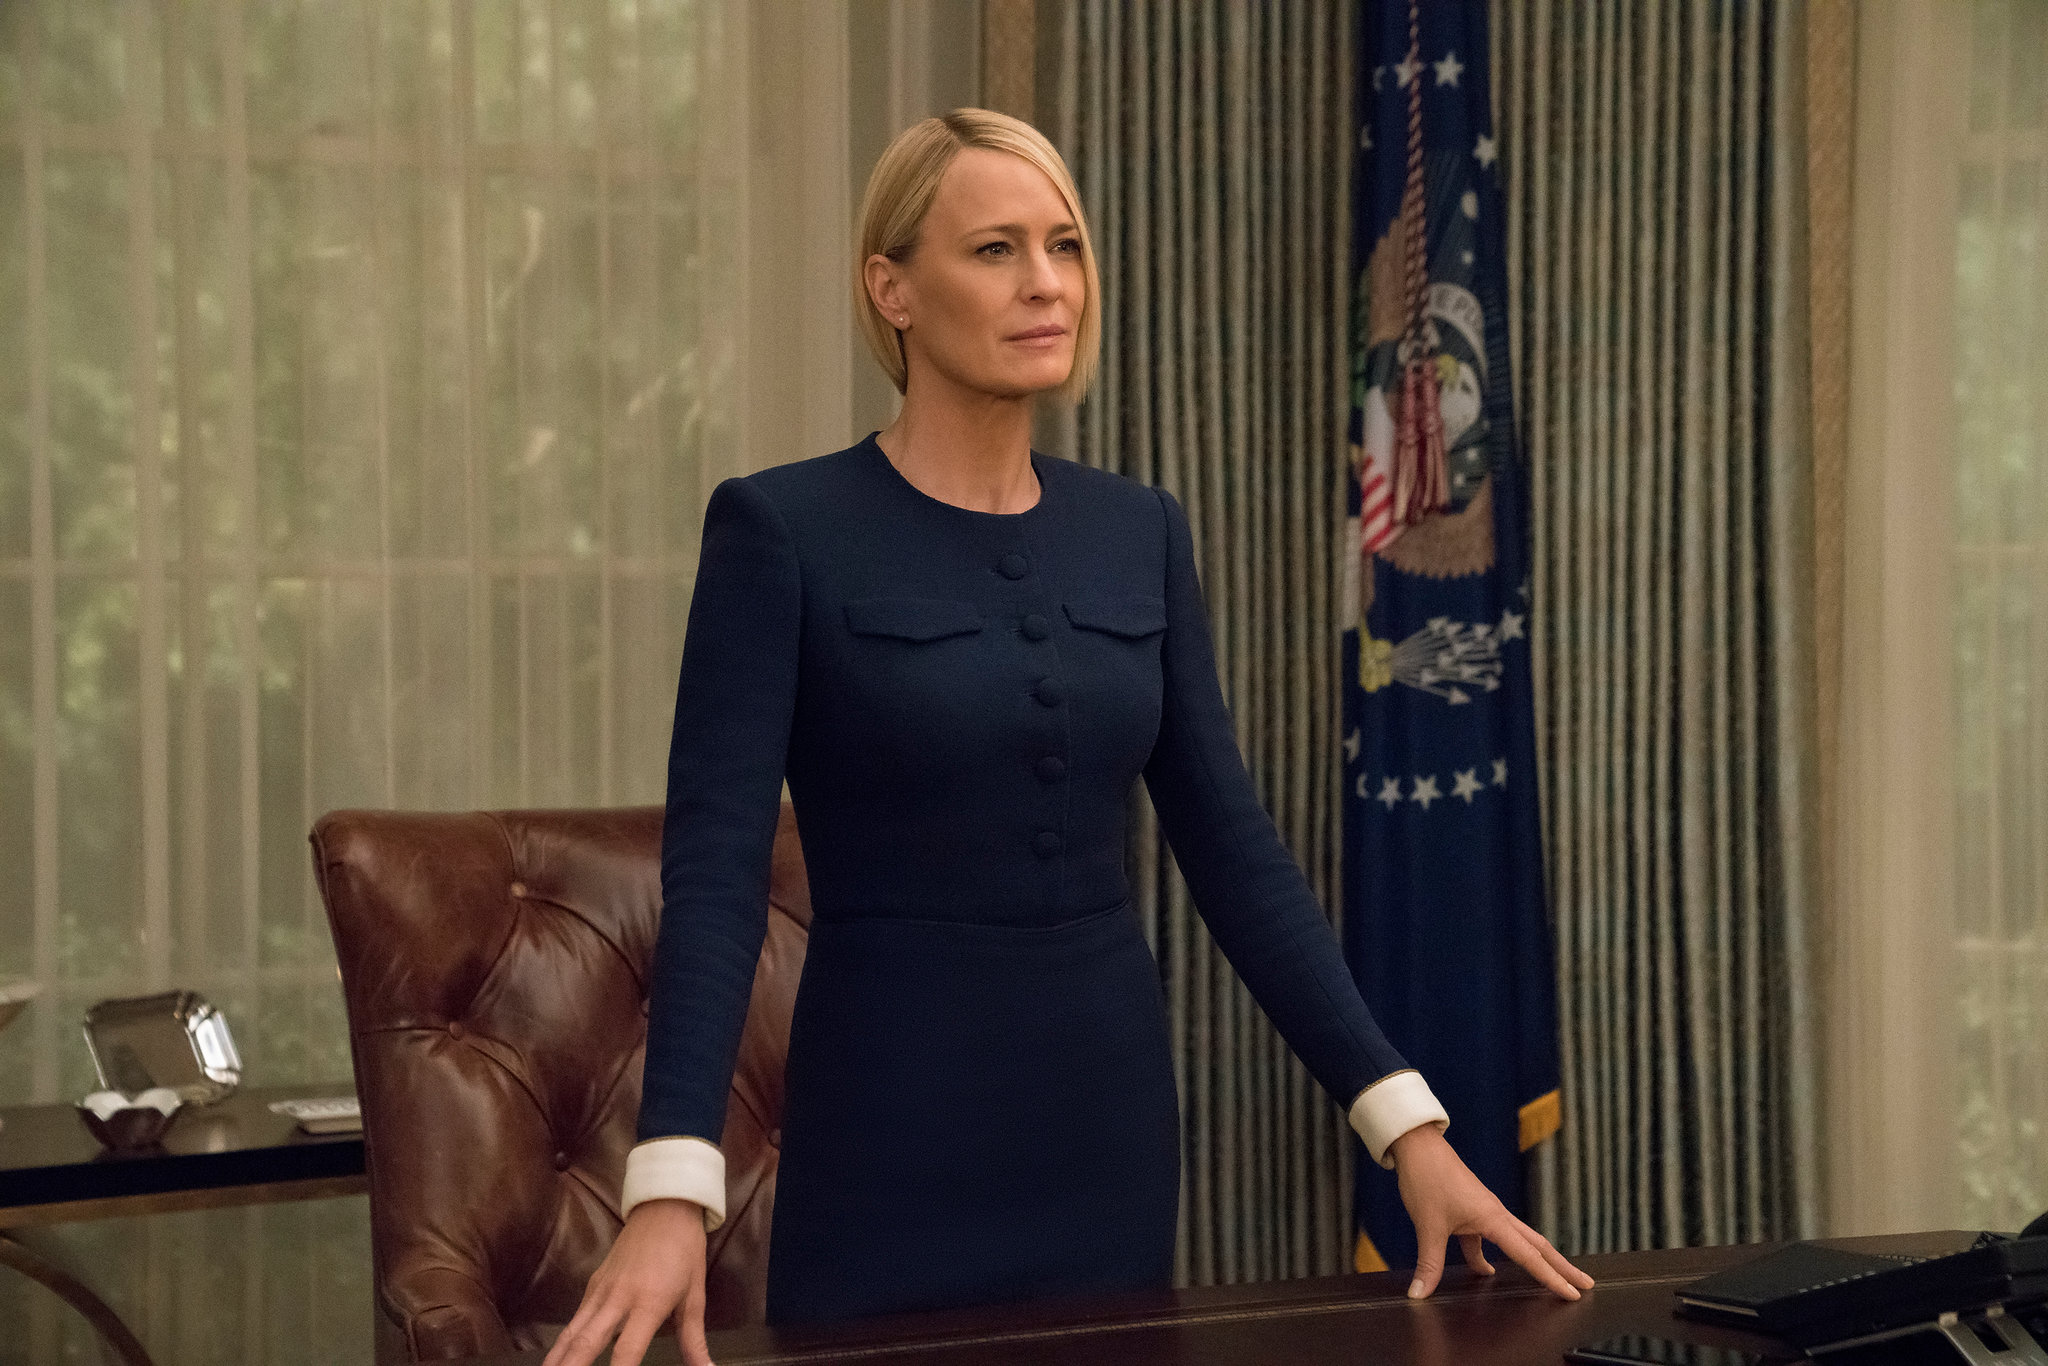 A still of Robin Wright from the show House of Cards.